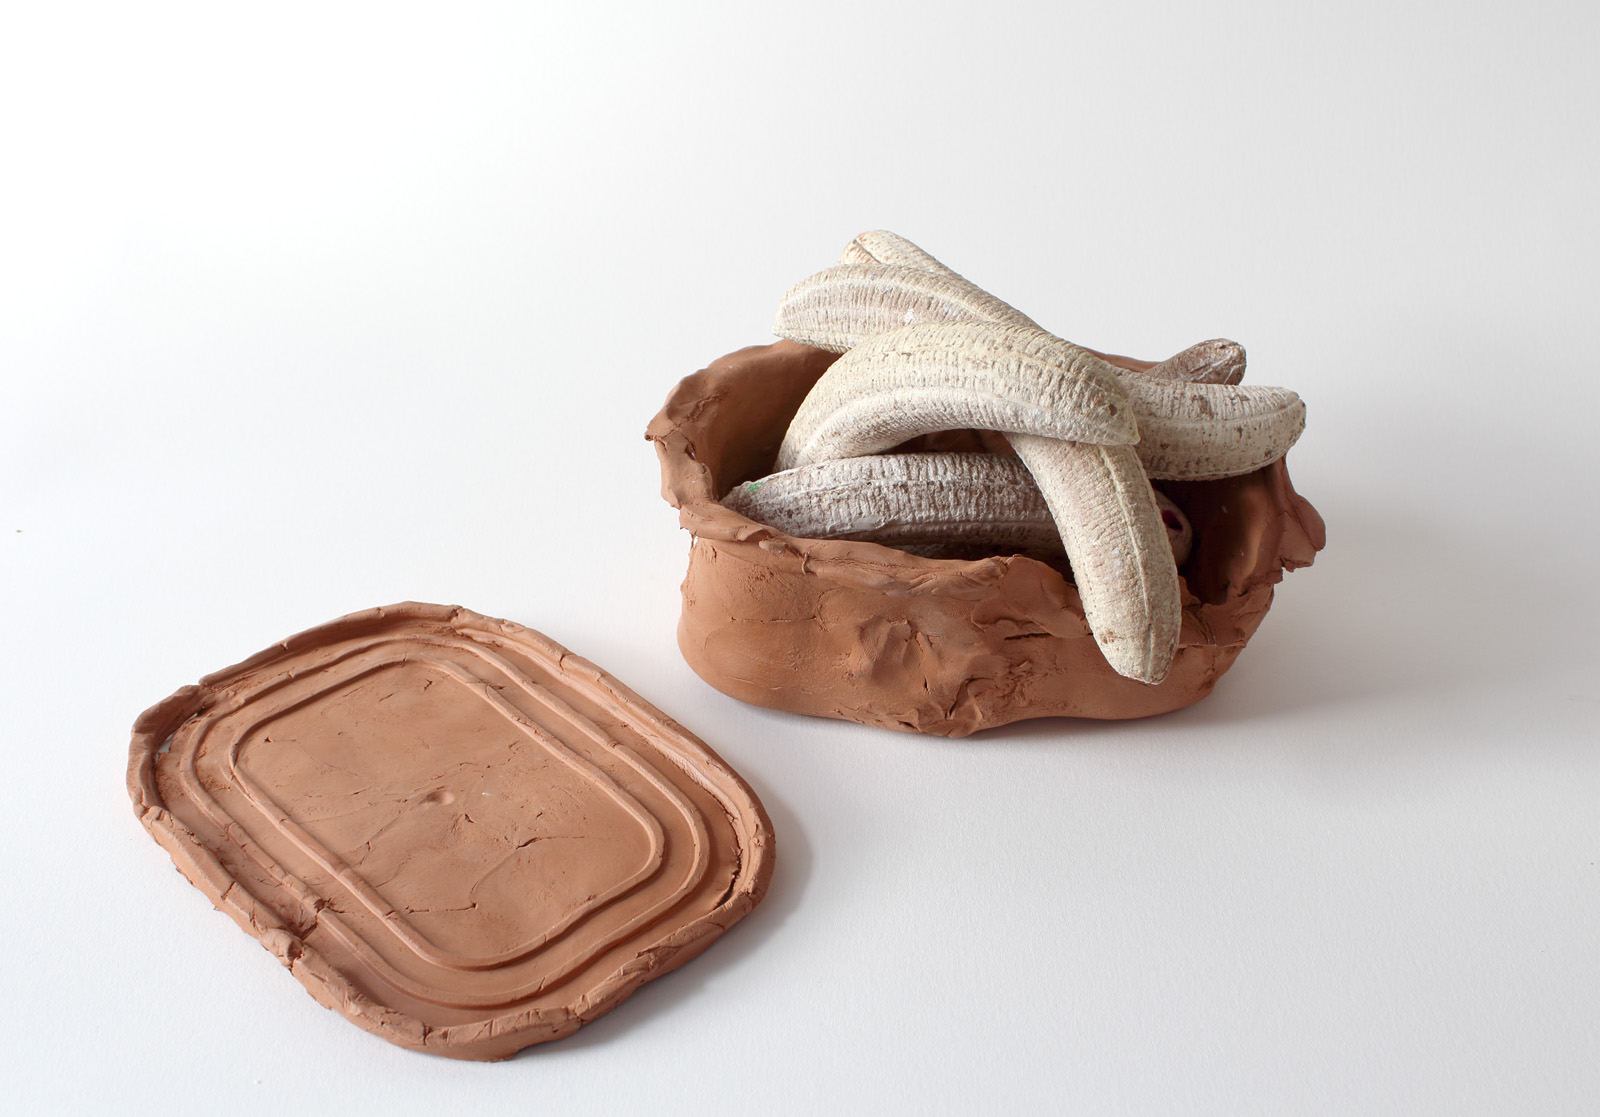 Untitled (Tupperware) , 2015  Plaster, air-dry clay  15 x 10 x 7 in